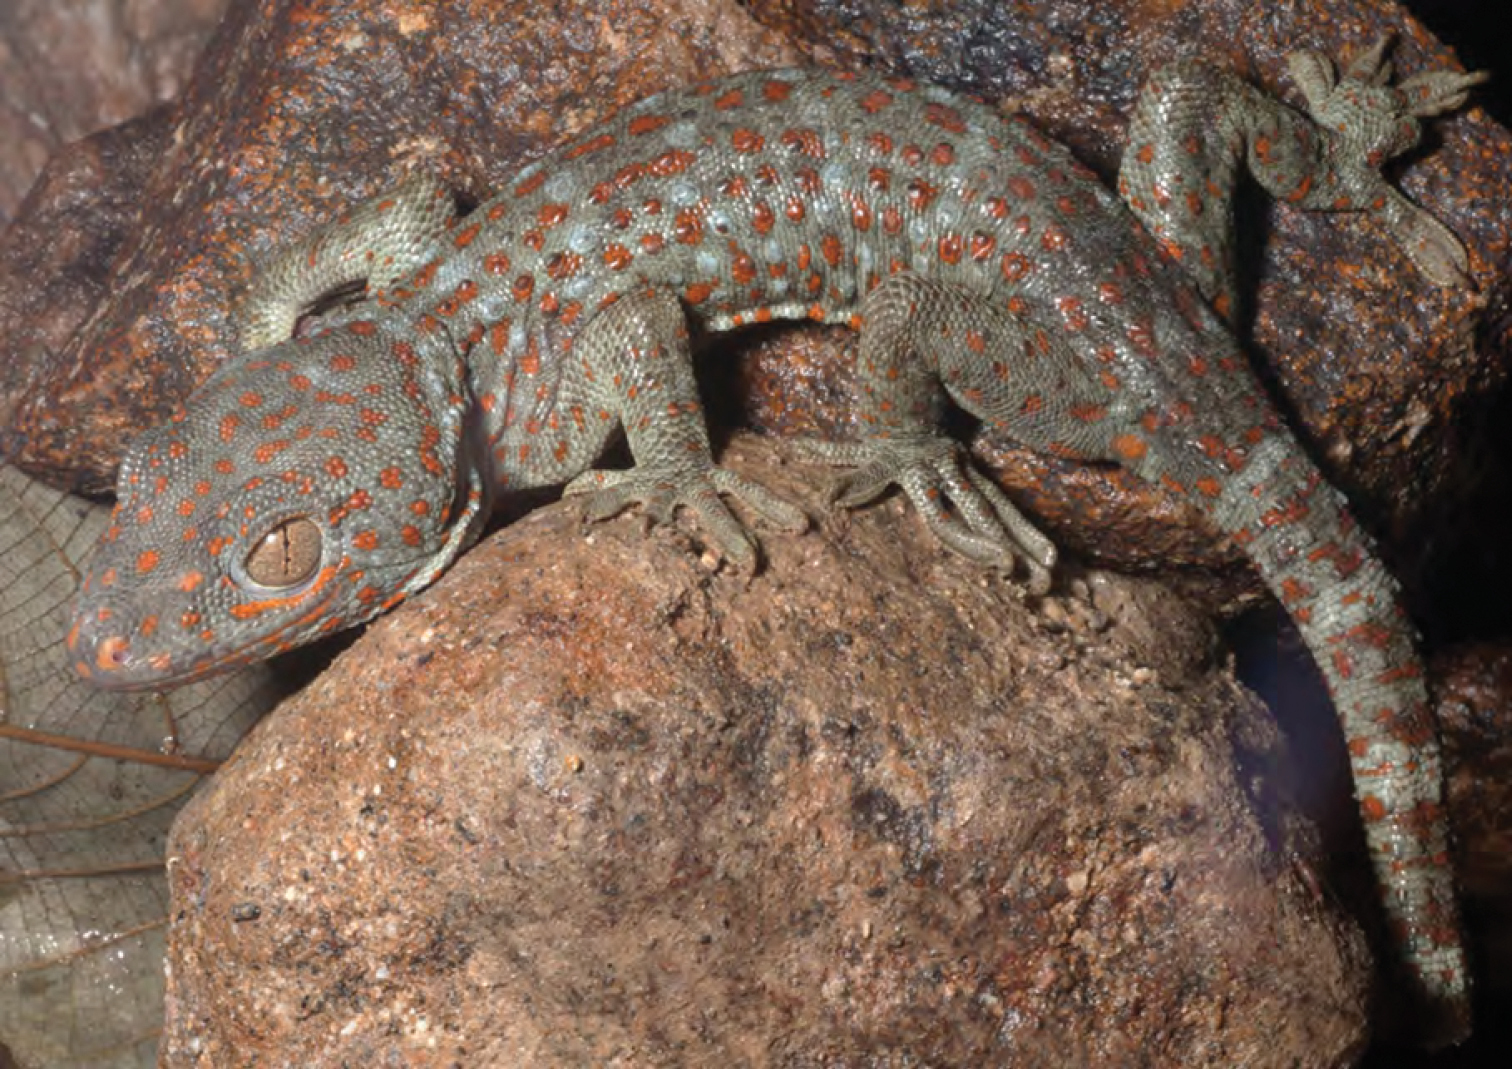 The amphibians and reptiles of Luzon Island, Philippines